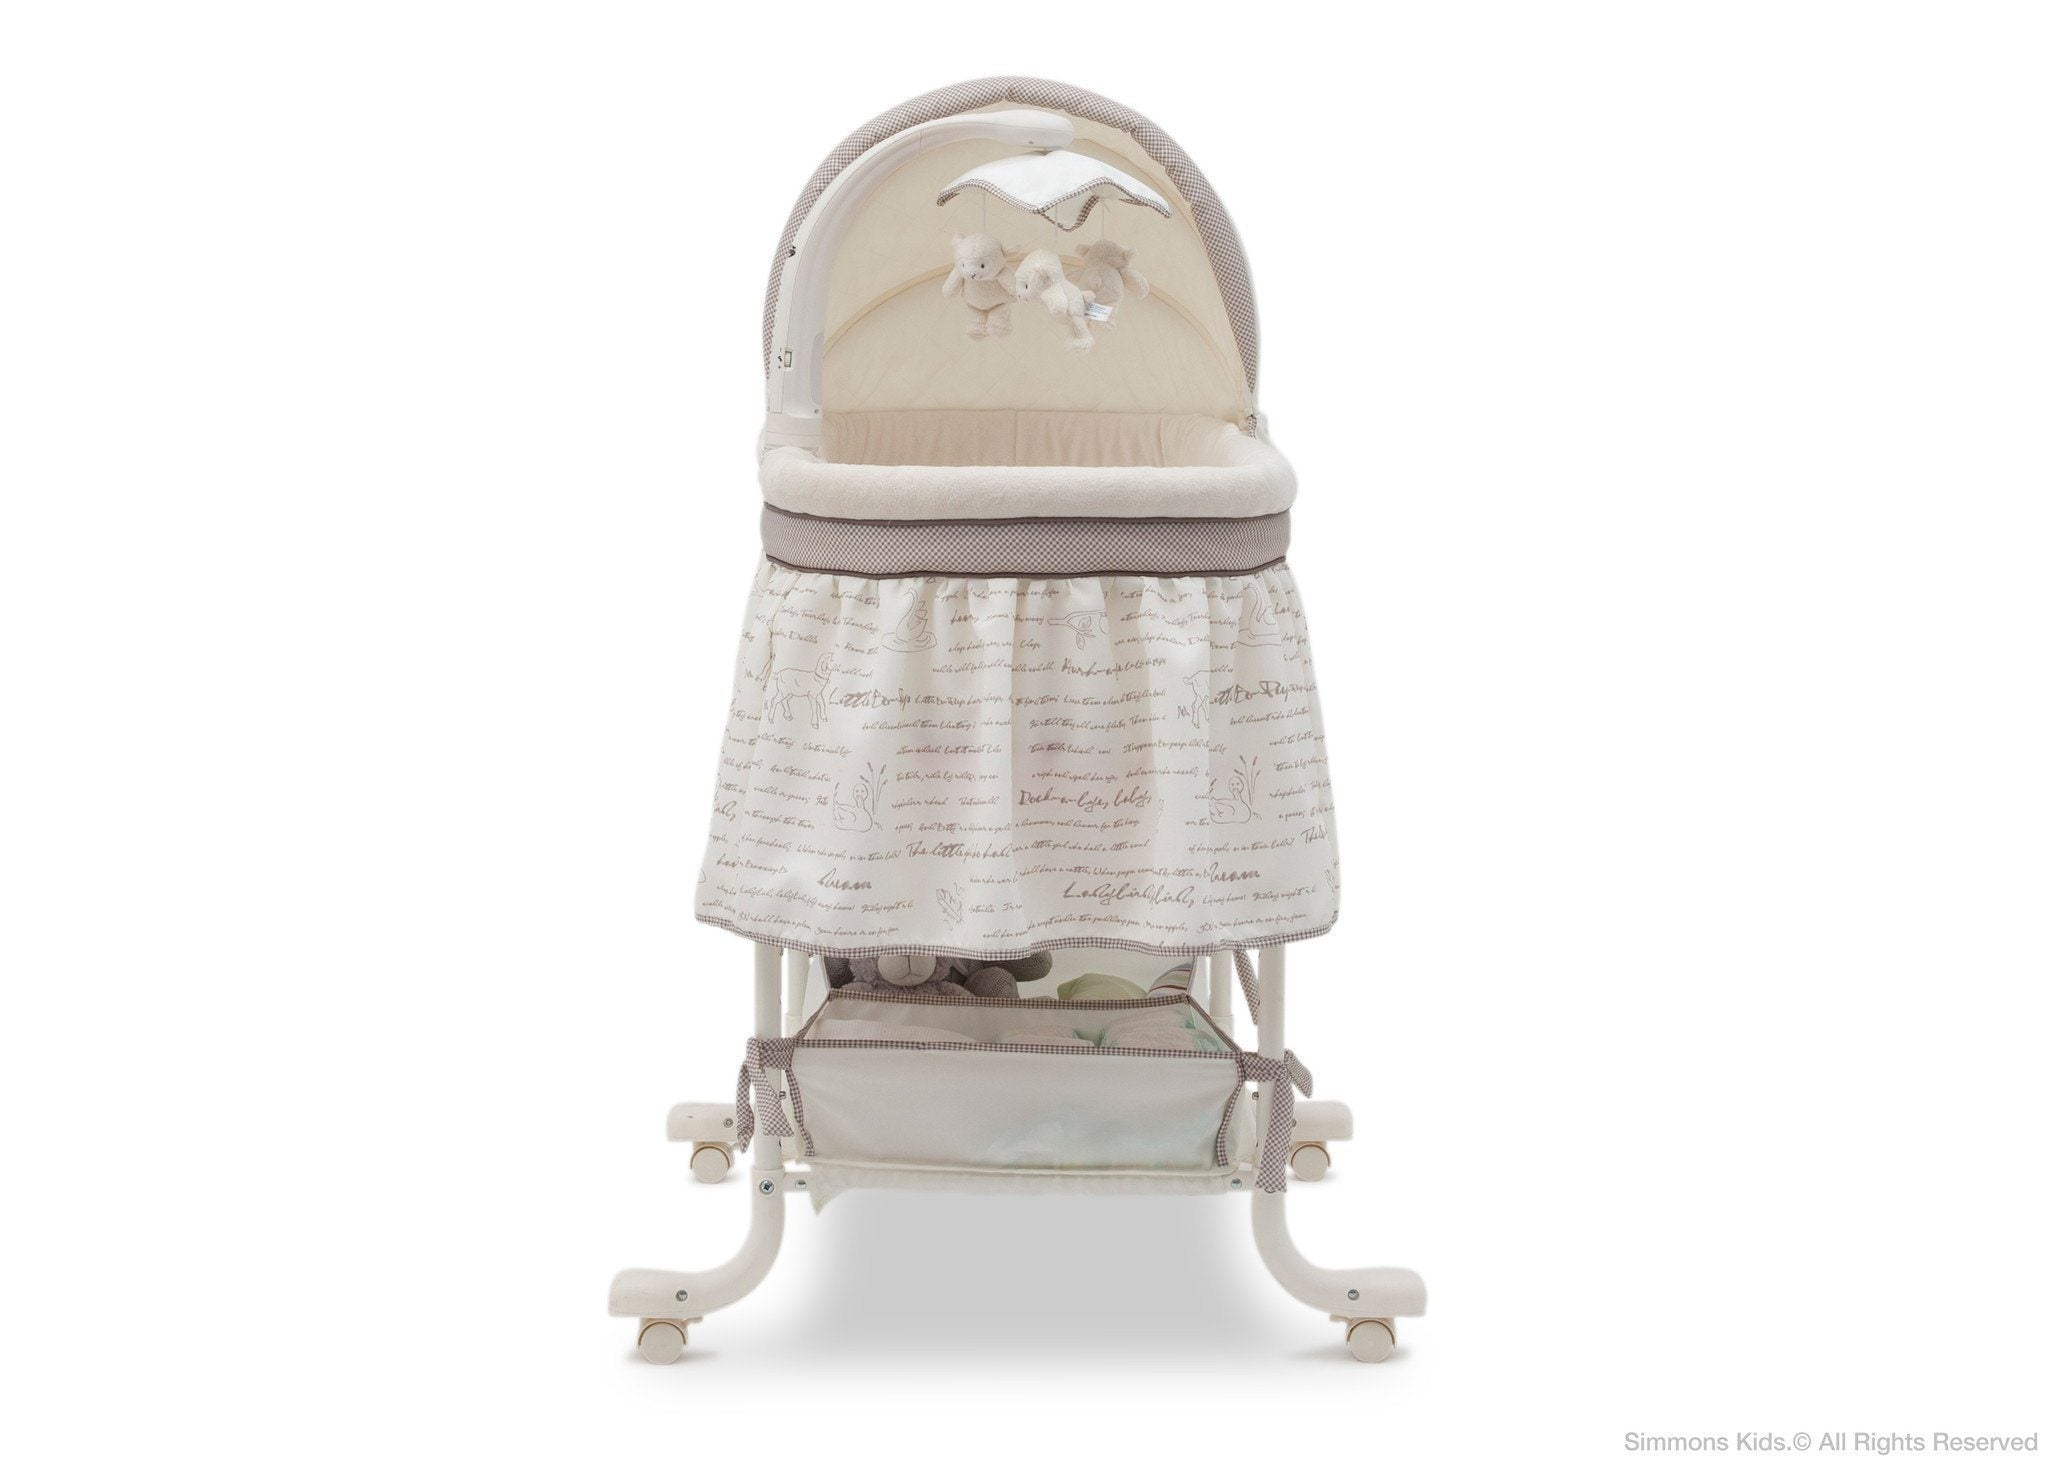 Simmons Kids Nursery Rhyme (172) Deluxe Gliding Bassinet Front View b2b